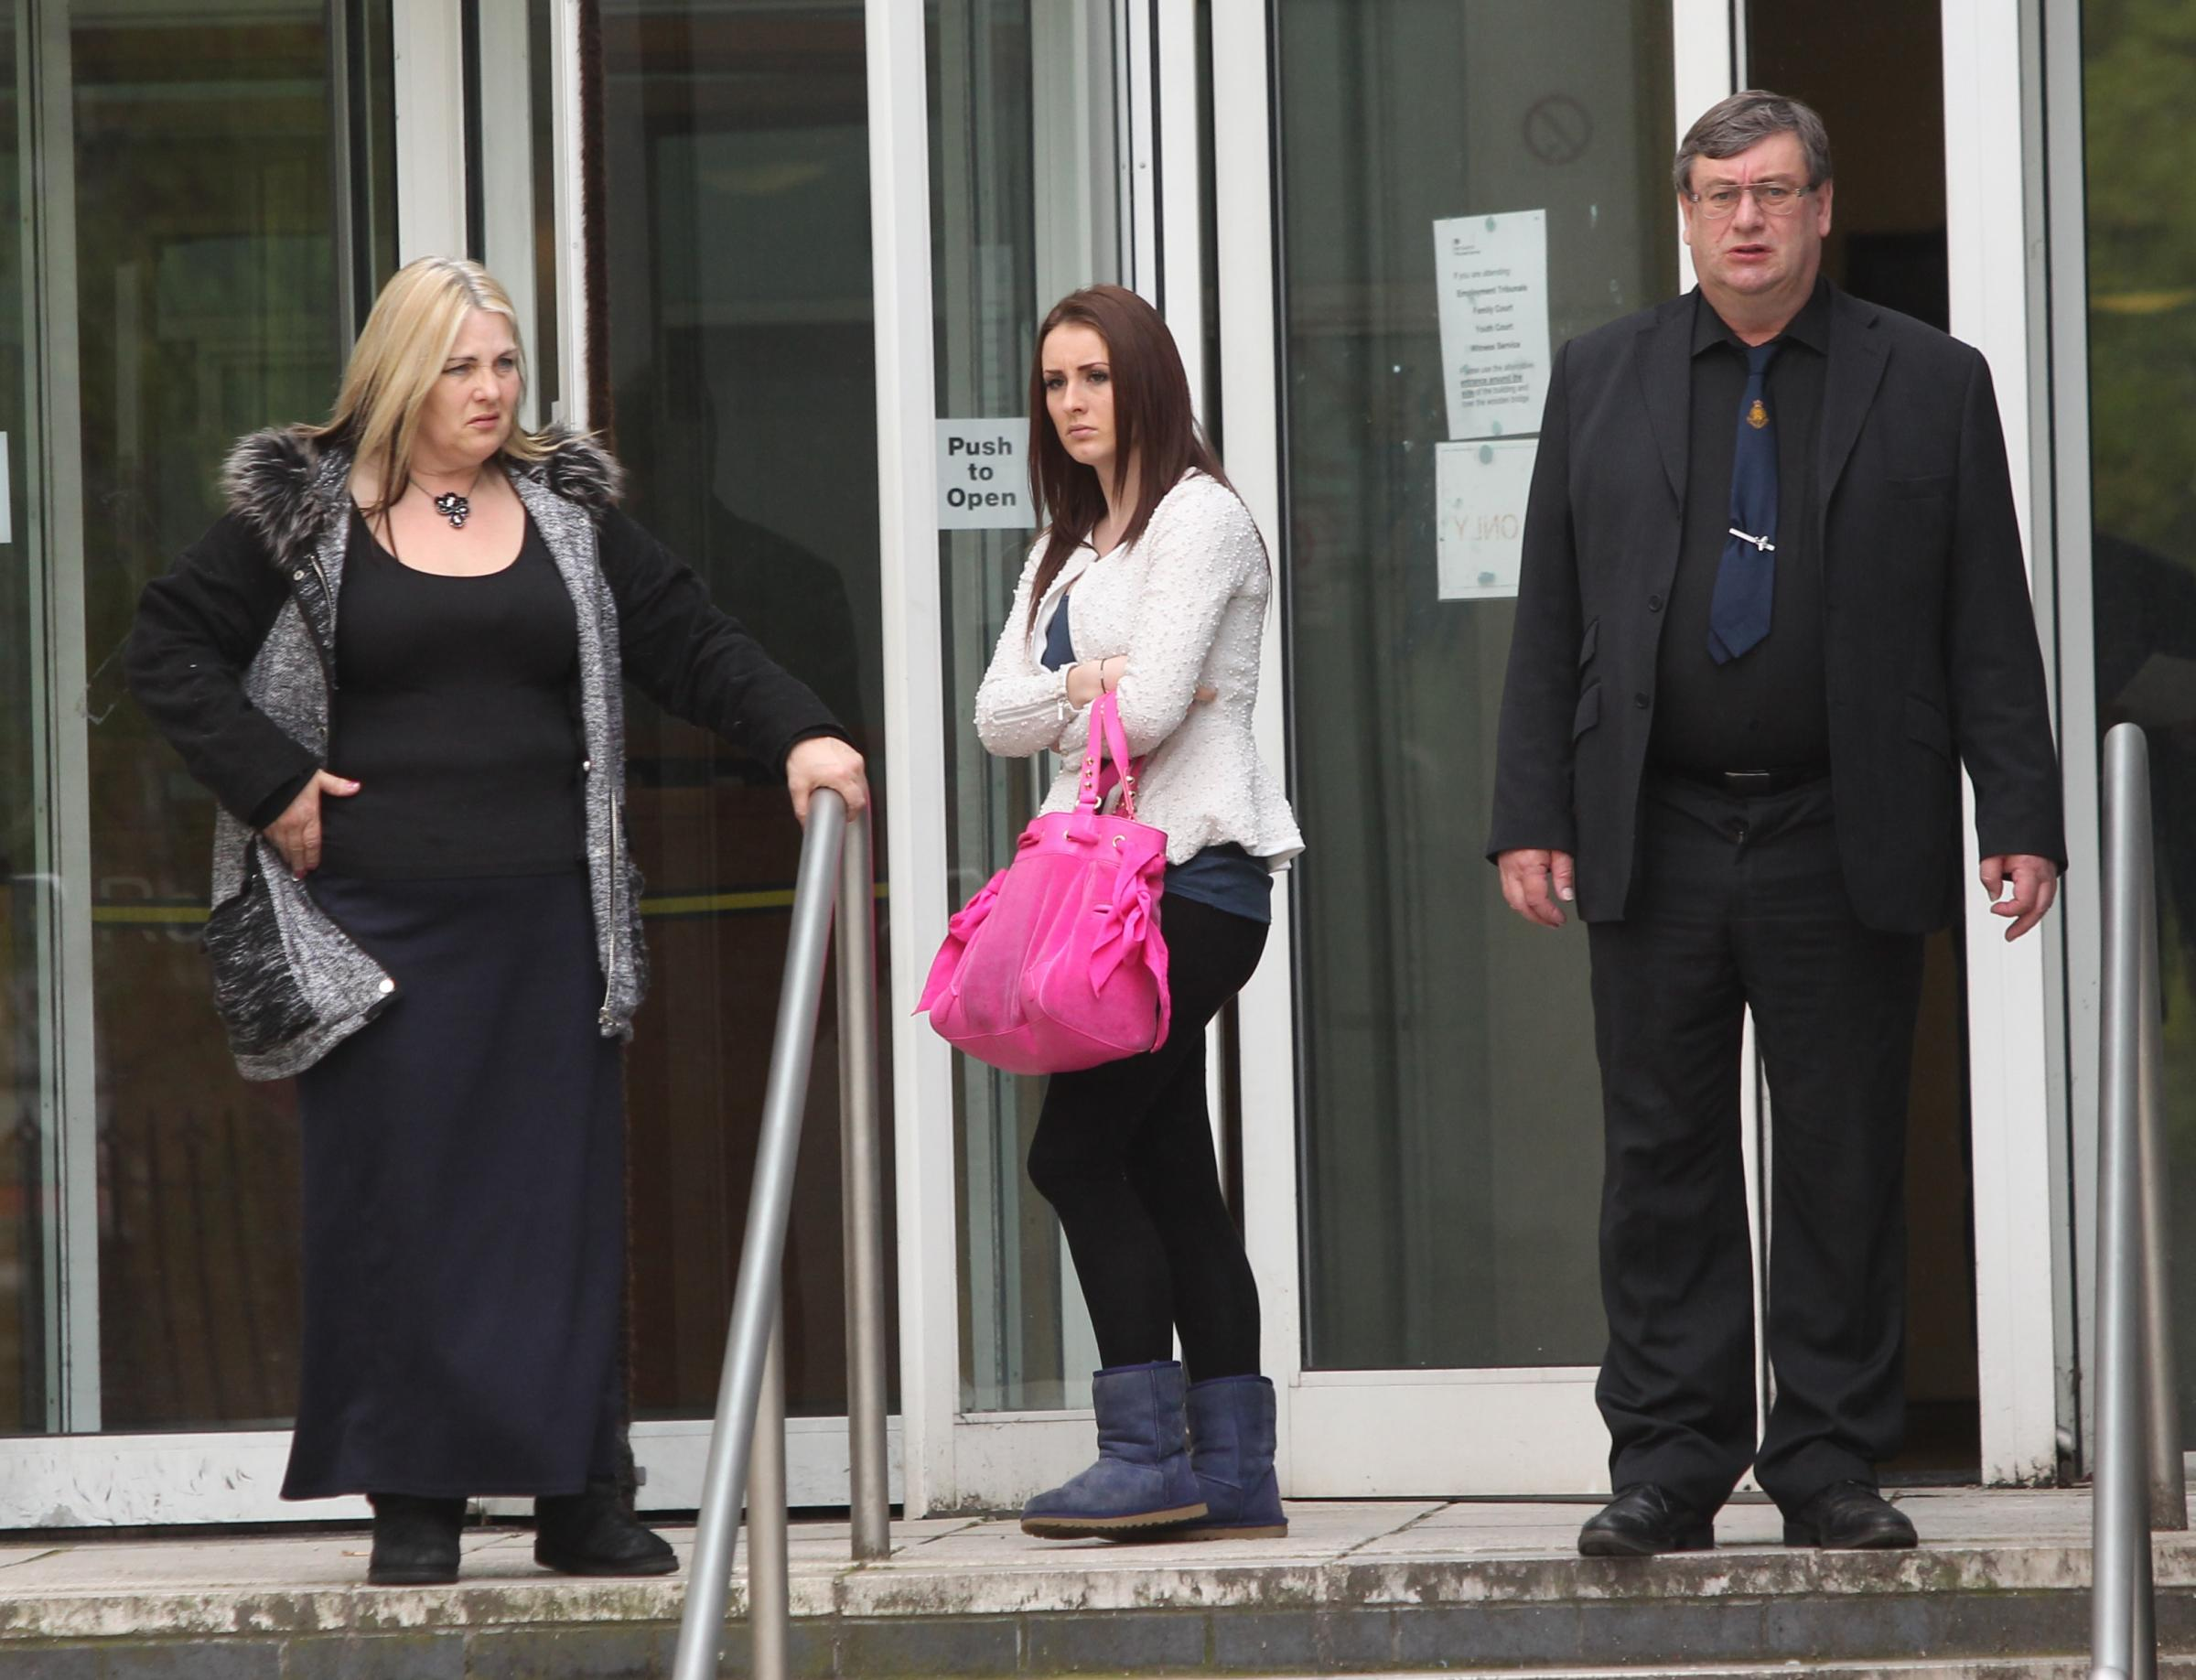 The Moss family: Michael and Elaine Moss with Lucia Moss outside court